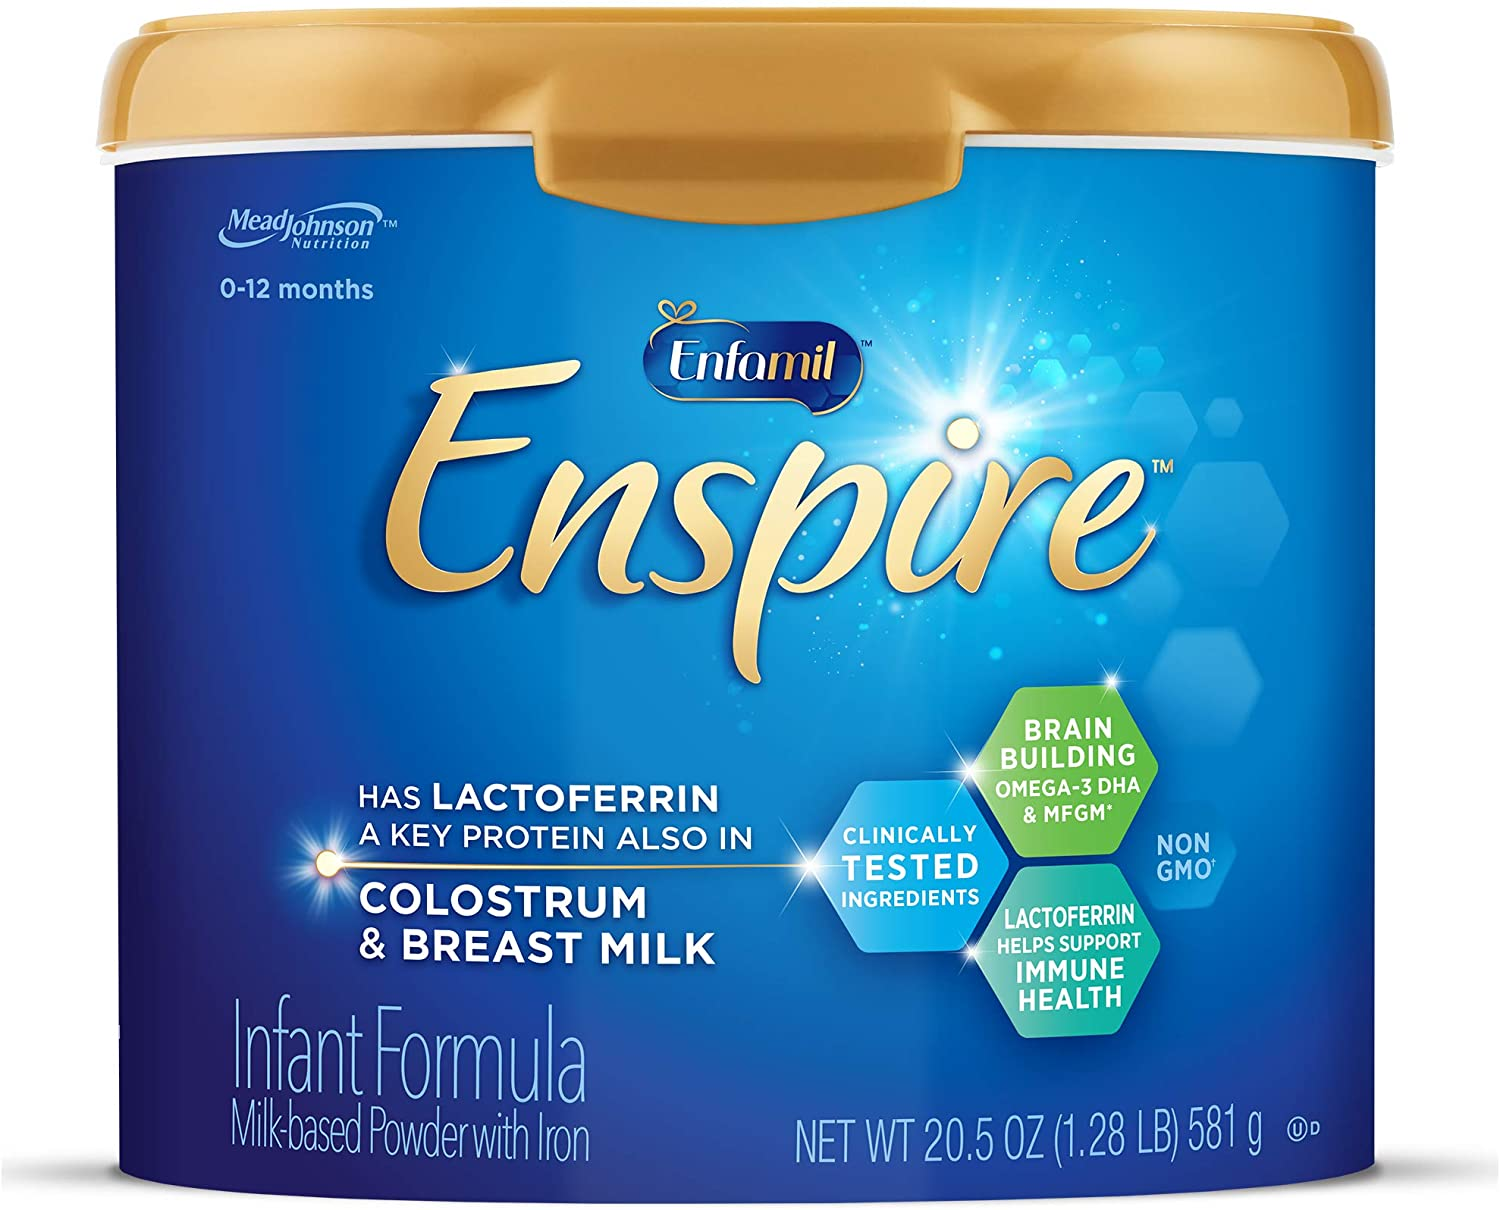 Enfamil Enspire Best Baby Formula for gas